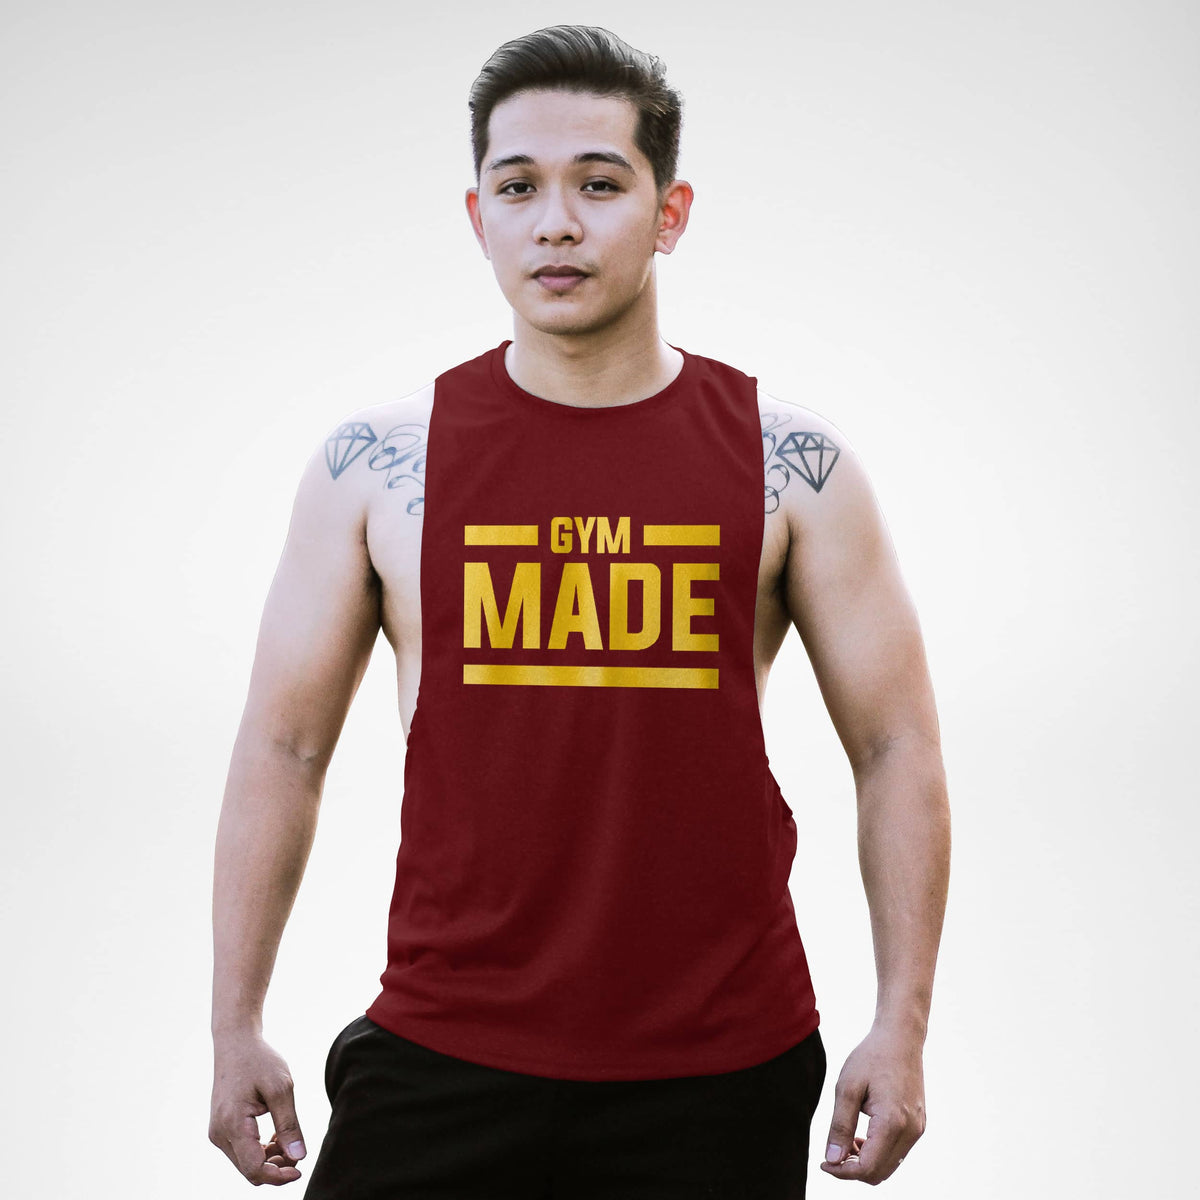 AM127 Gym Made Openside Tank Top